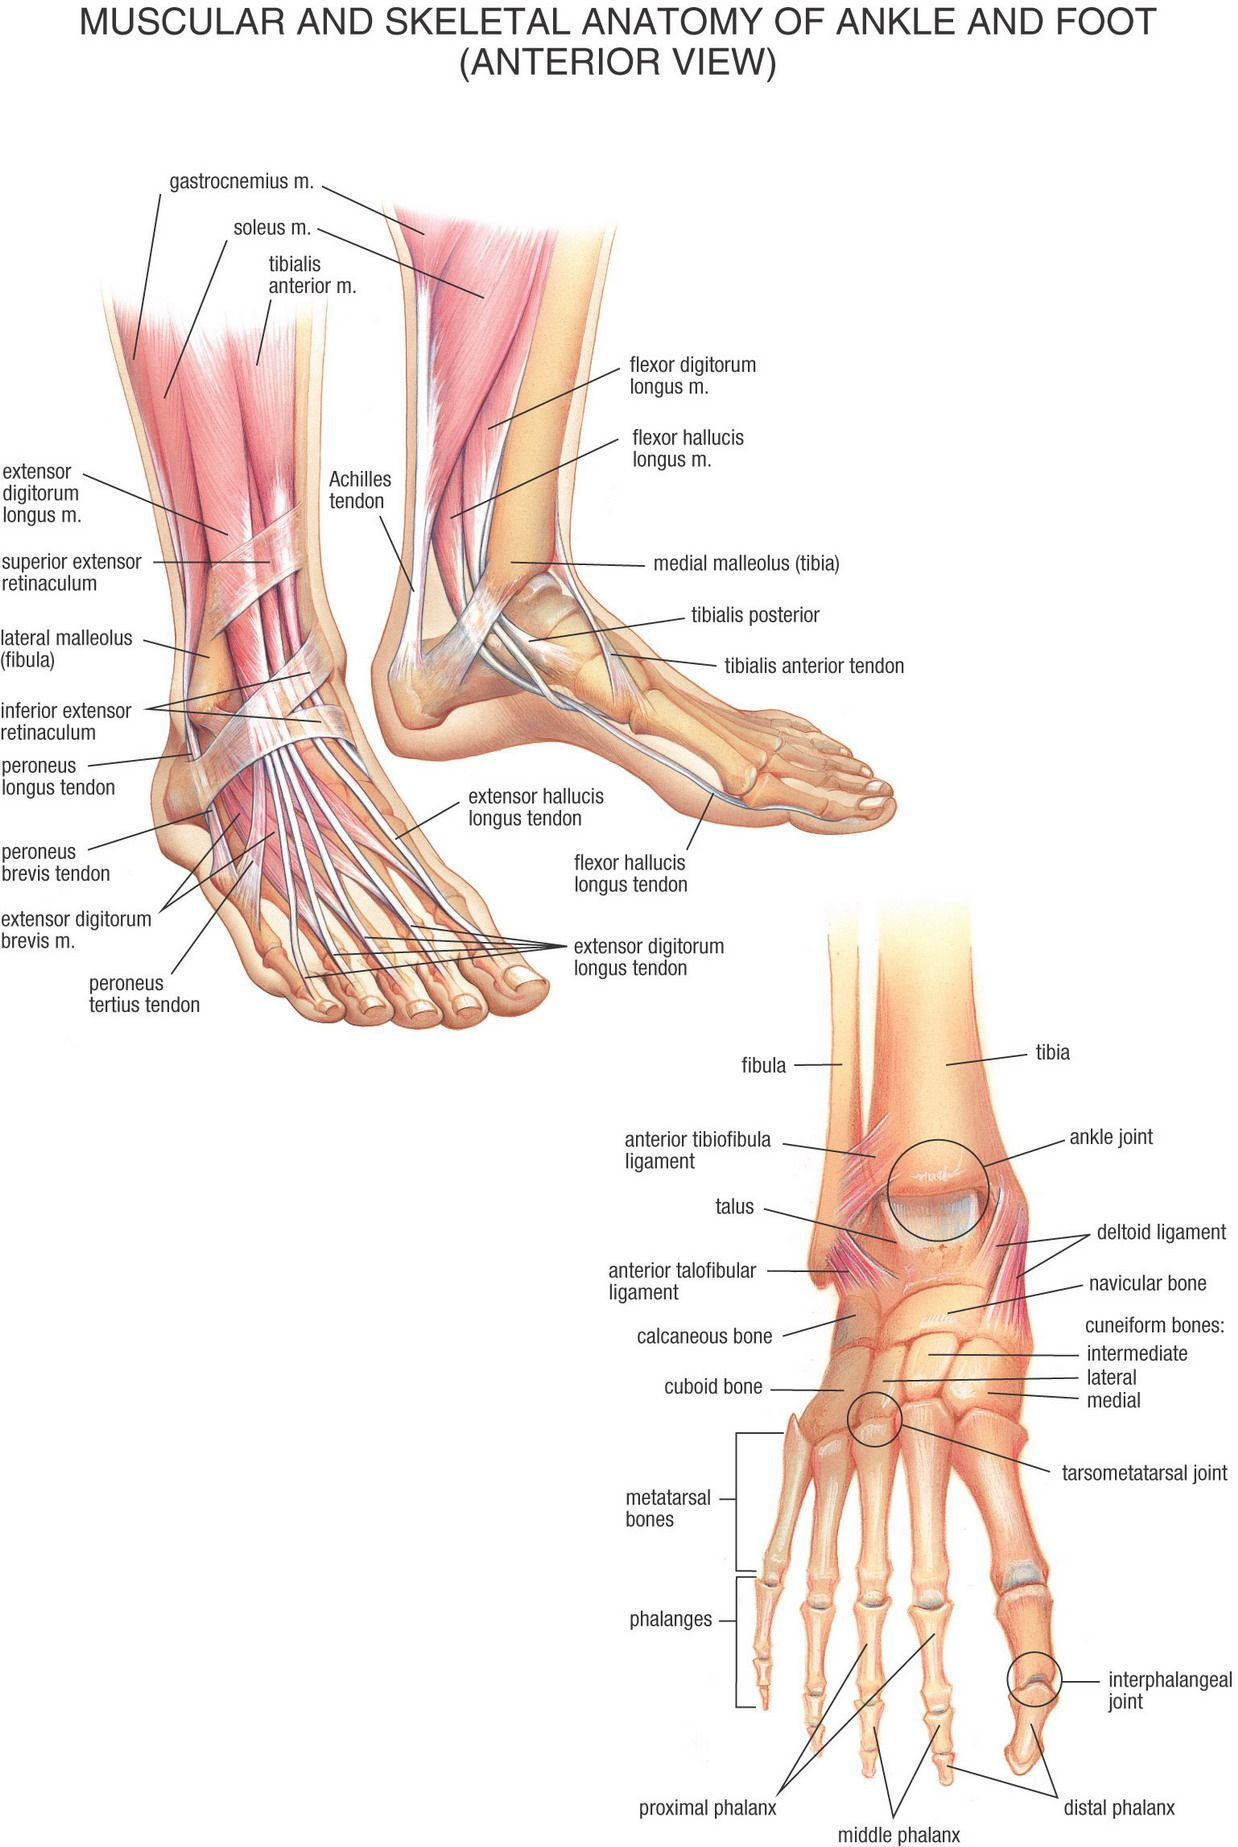 16_Muscular_and_Skeleta_ Anatomy_of_Ankle_and_Foot_Anterior_View.jpg ...